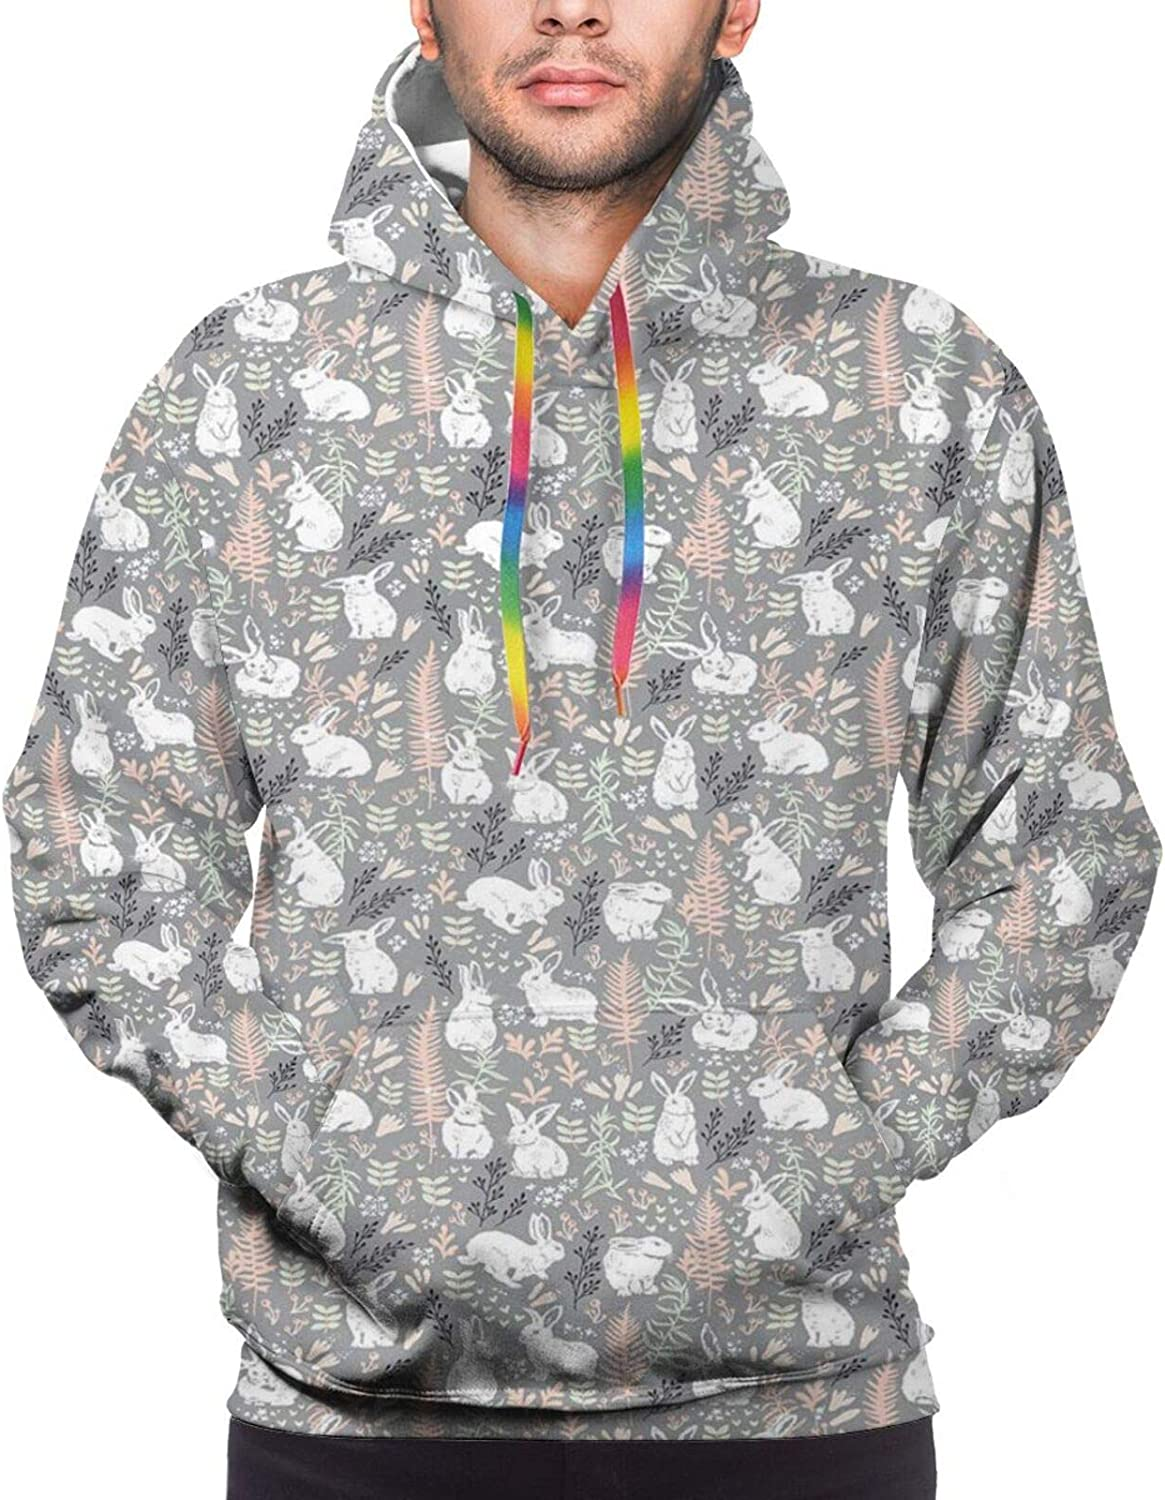 Men's Hoodies Sweatshirts,Nature Inspired Image with Polka Dots and Hearts Flowers Soft Pattern